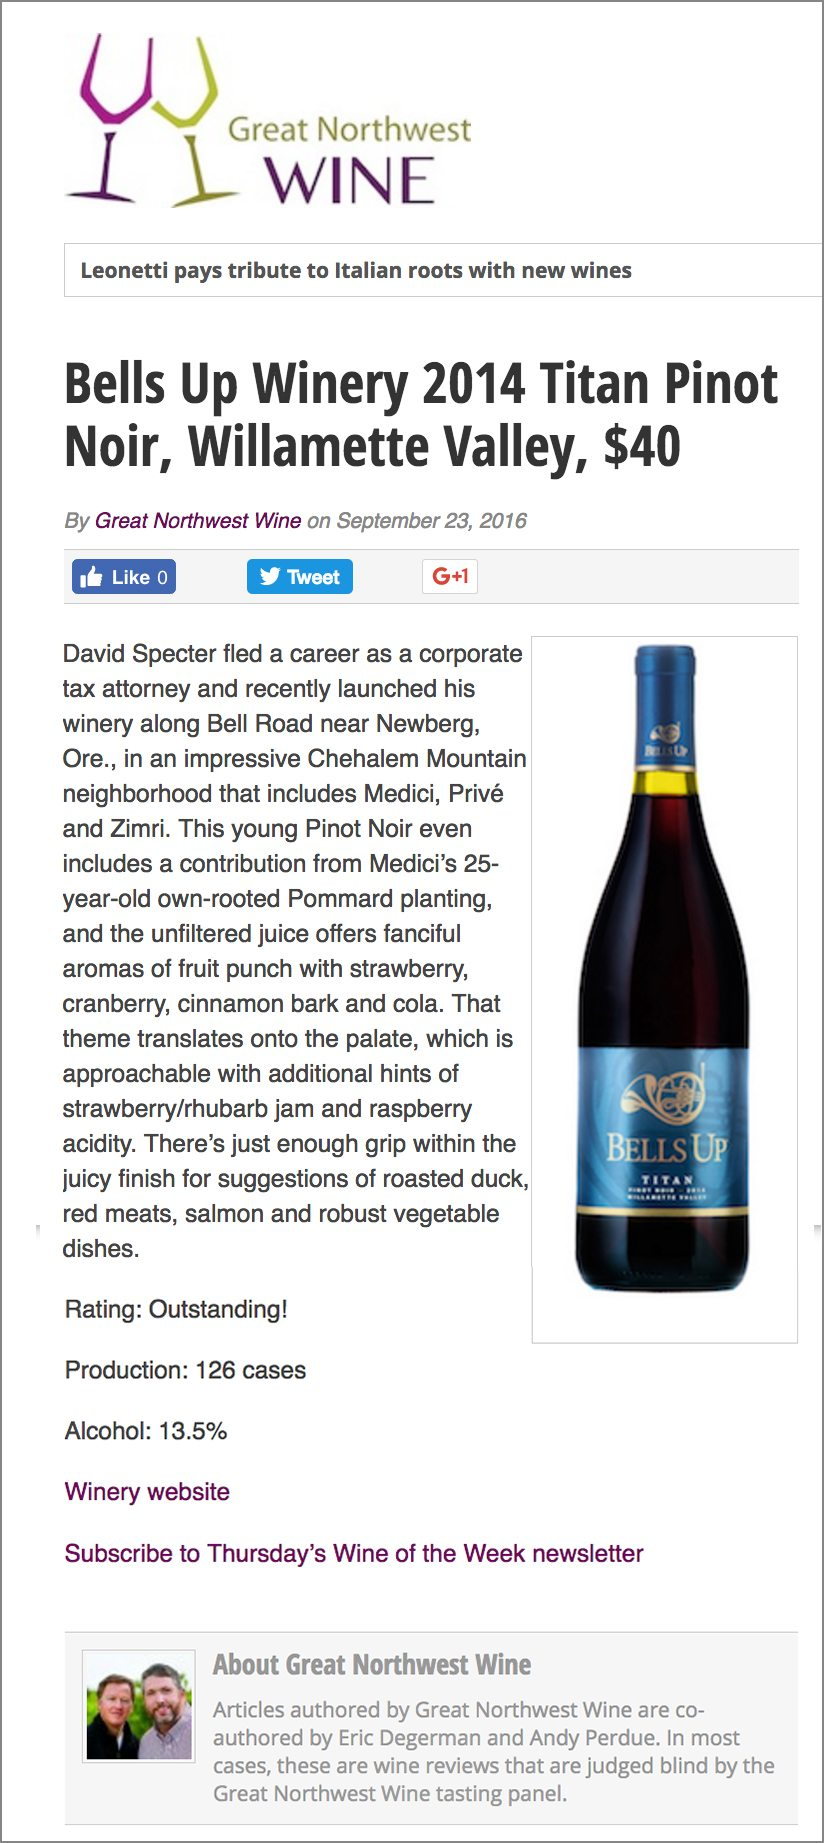 Review of Bells Up's 2014 Titan Pinot Noir from Great Northwest Wine.